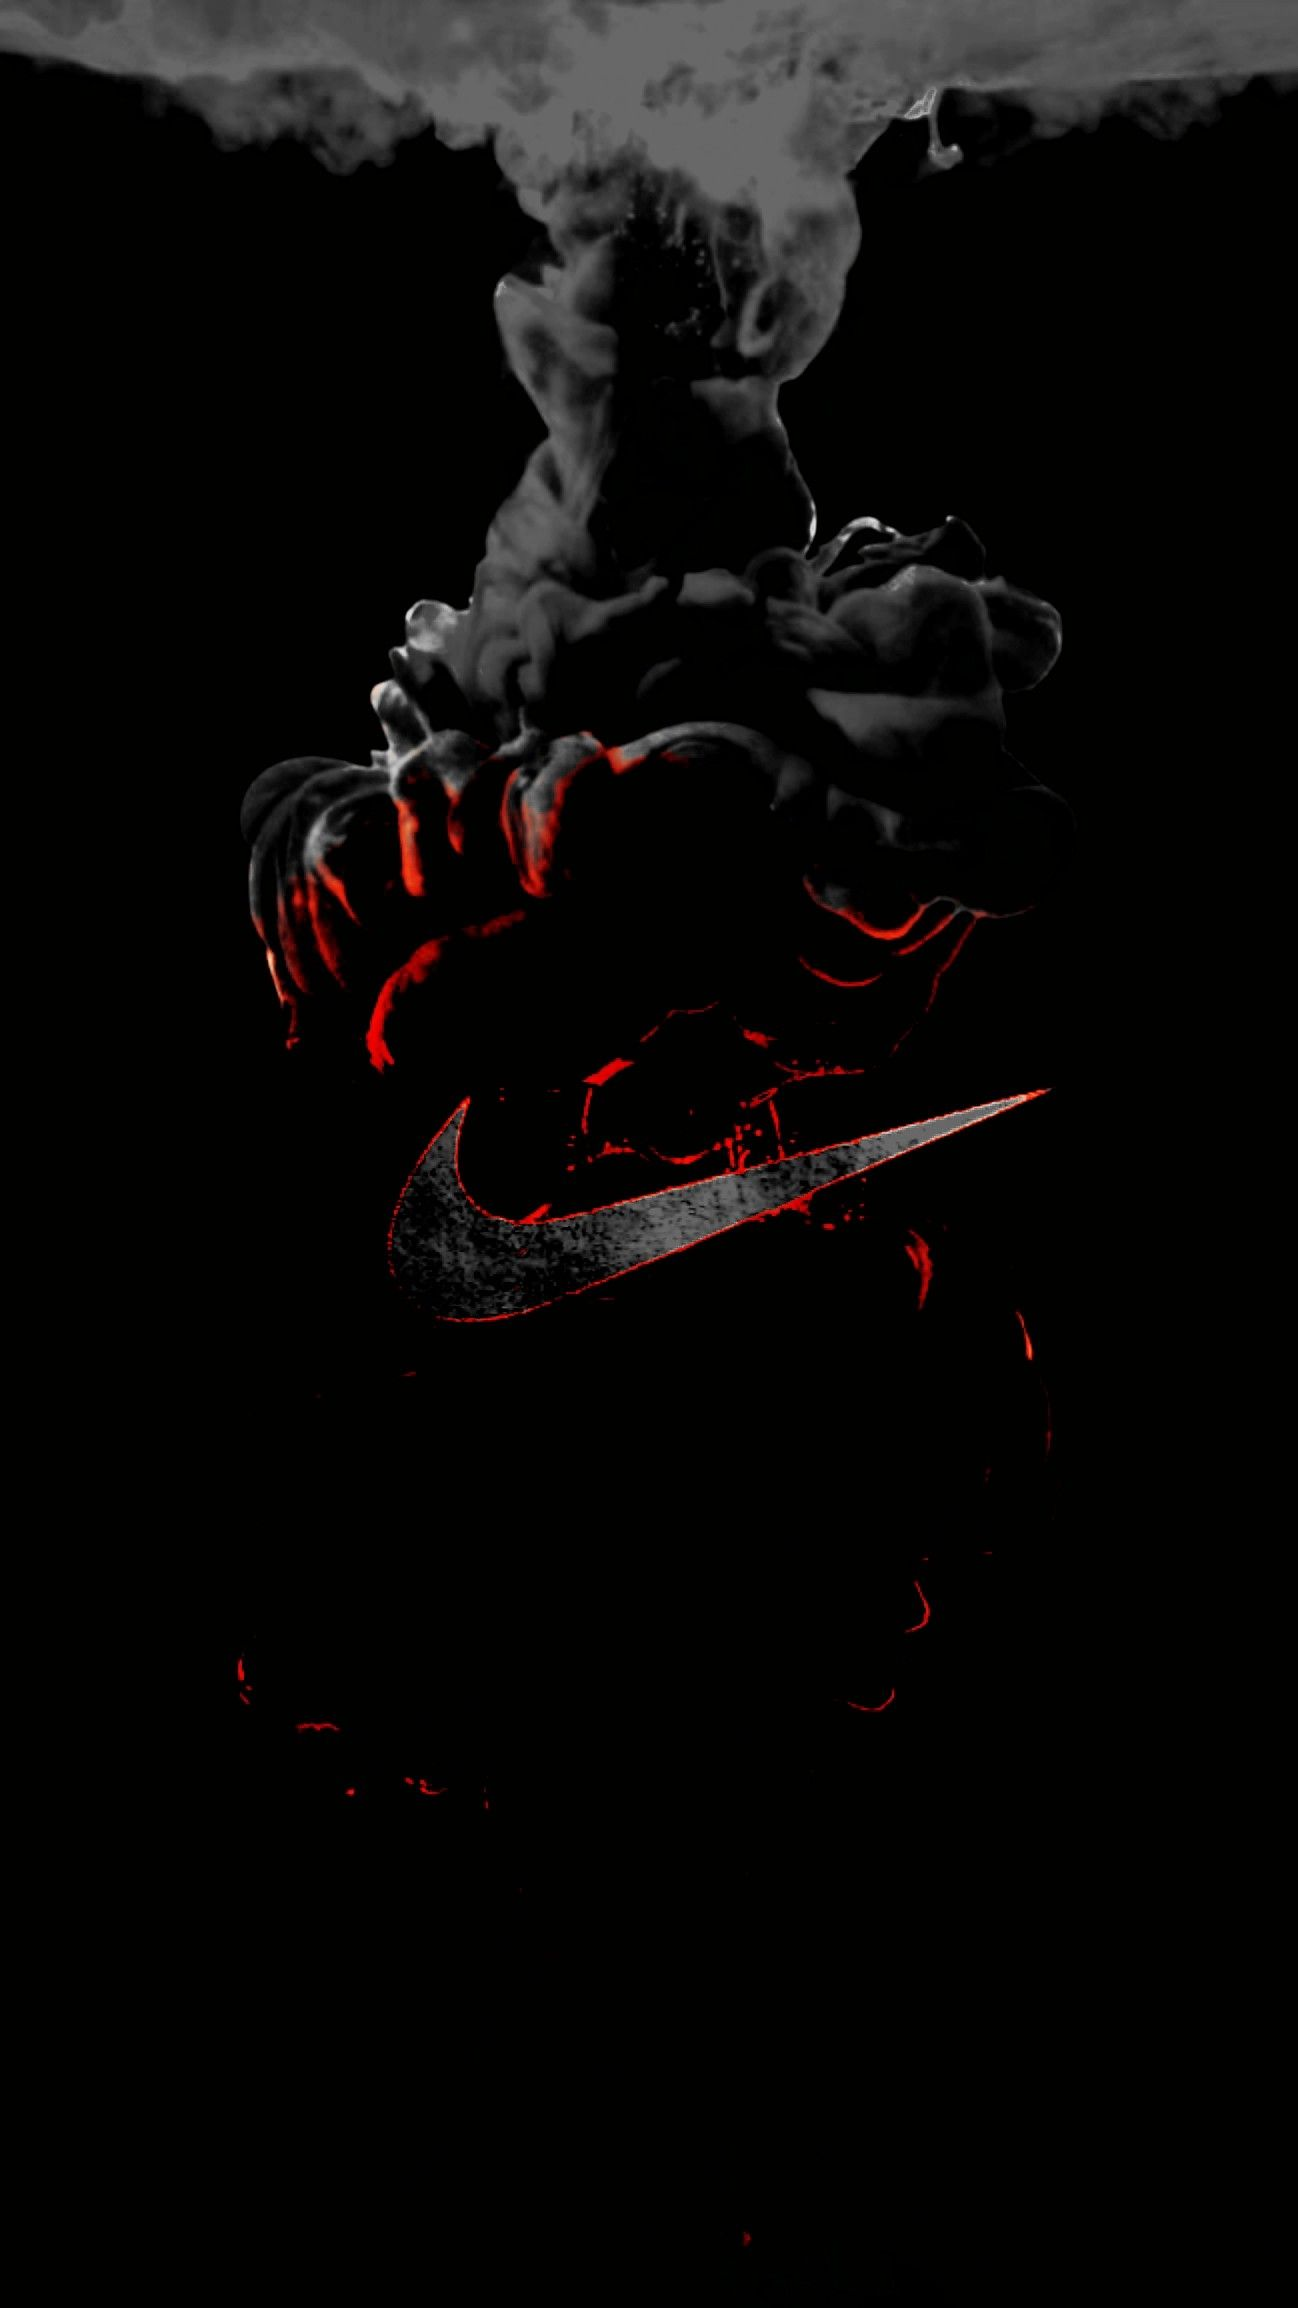 Pin By Hooter S Designs On Nike Wallpaper In 2020 Nike Wallpaper Cool Nike Wallpapers Nike Wallpaper Backgrounds